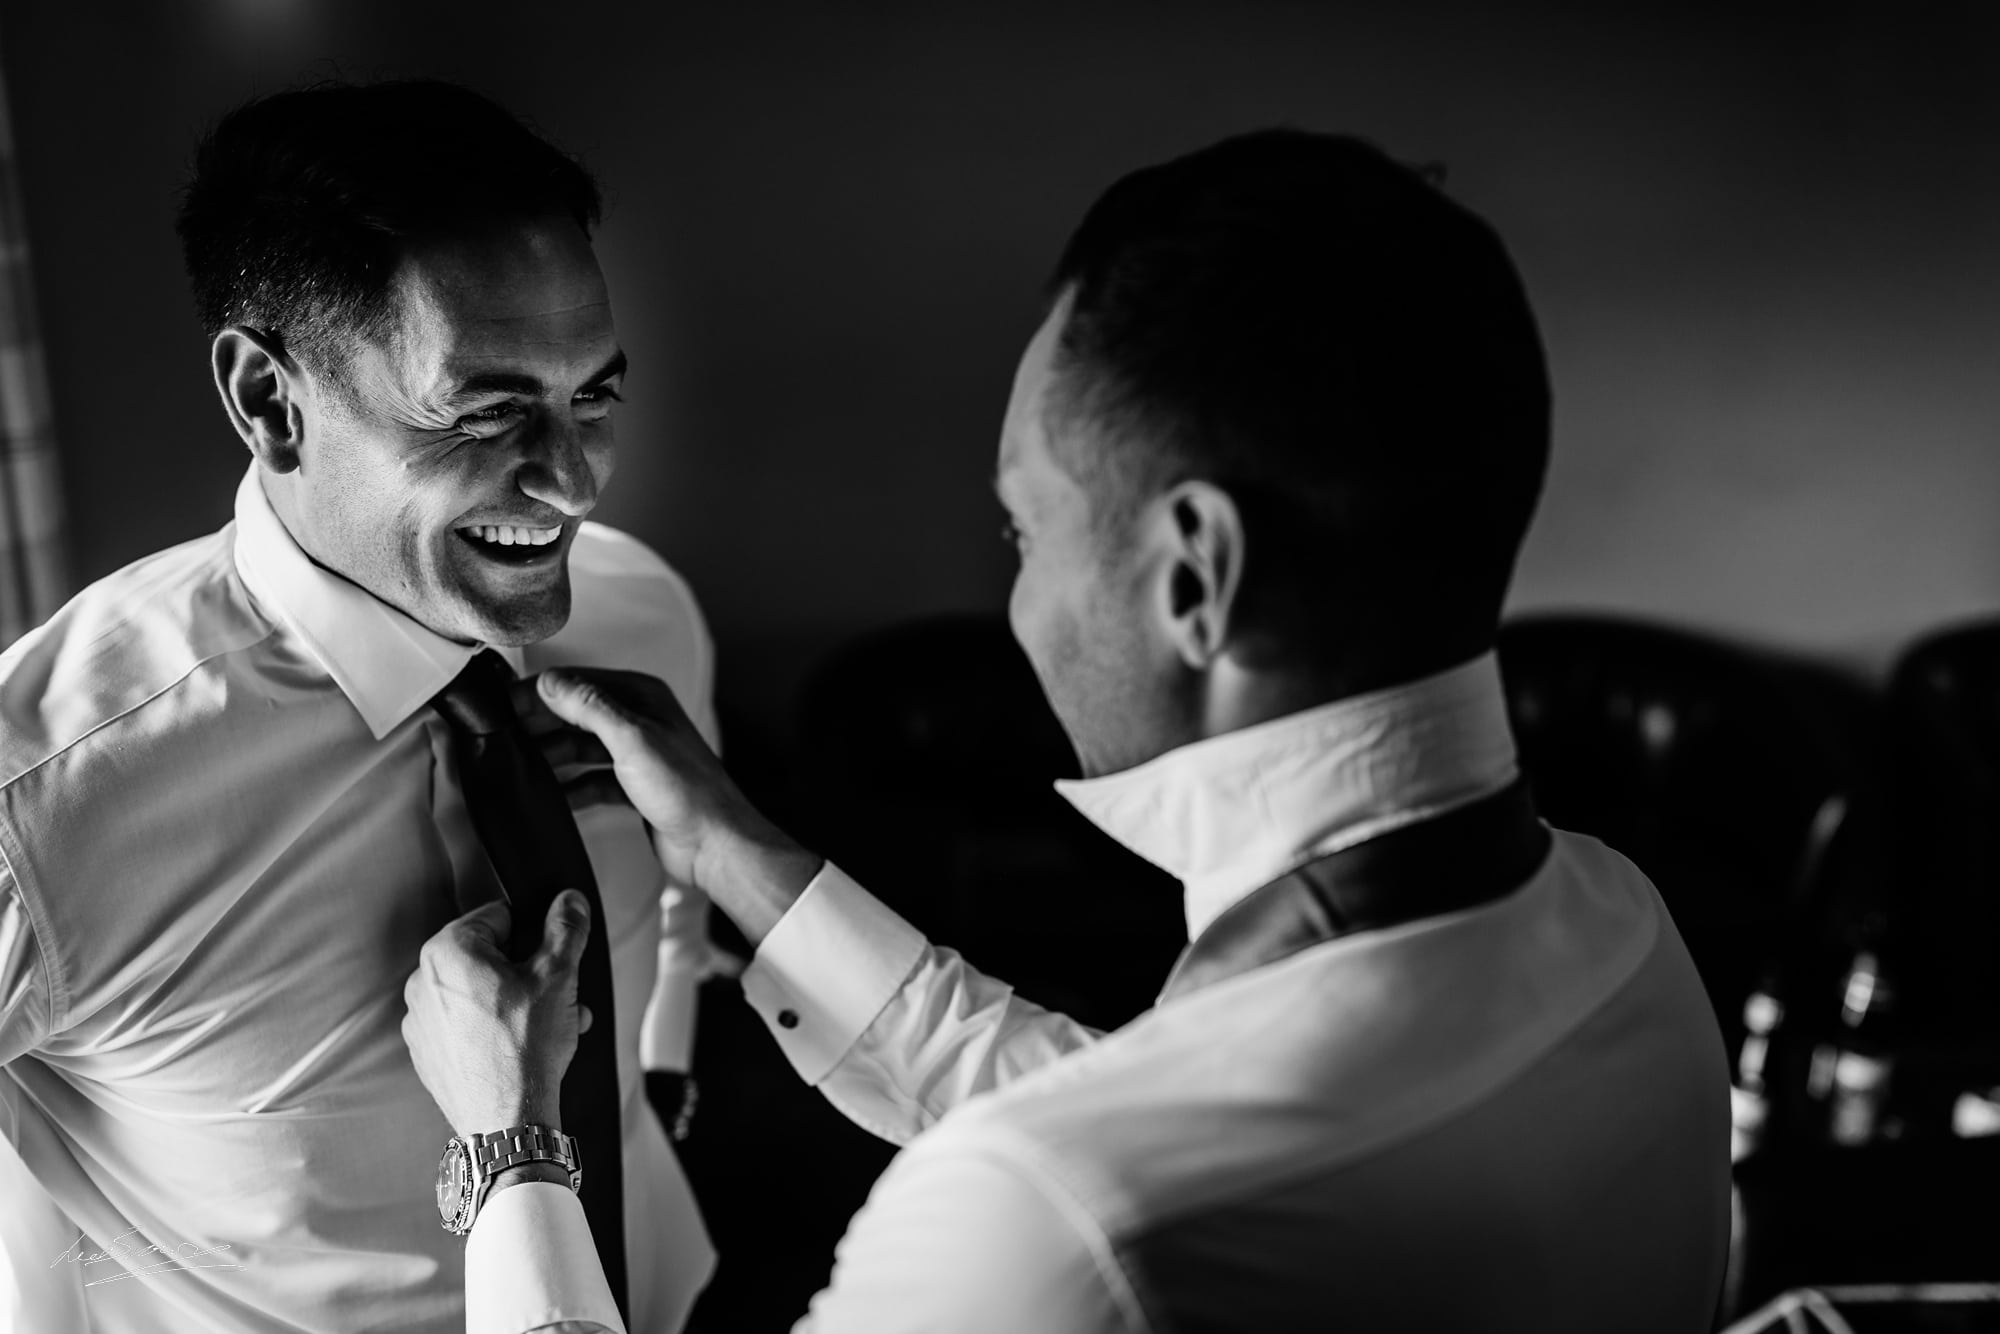 the groom having his tie done up